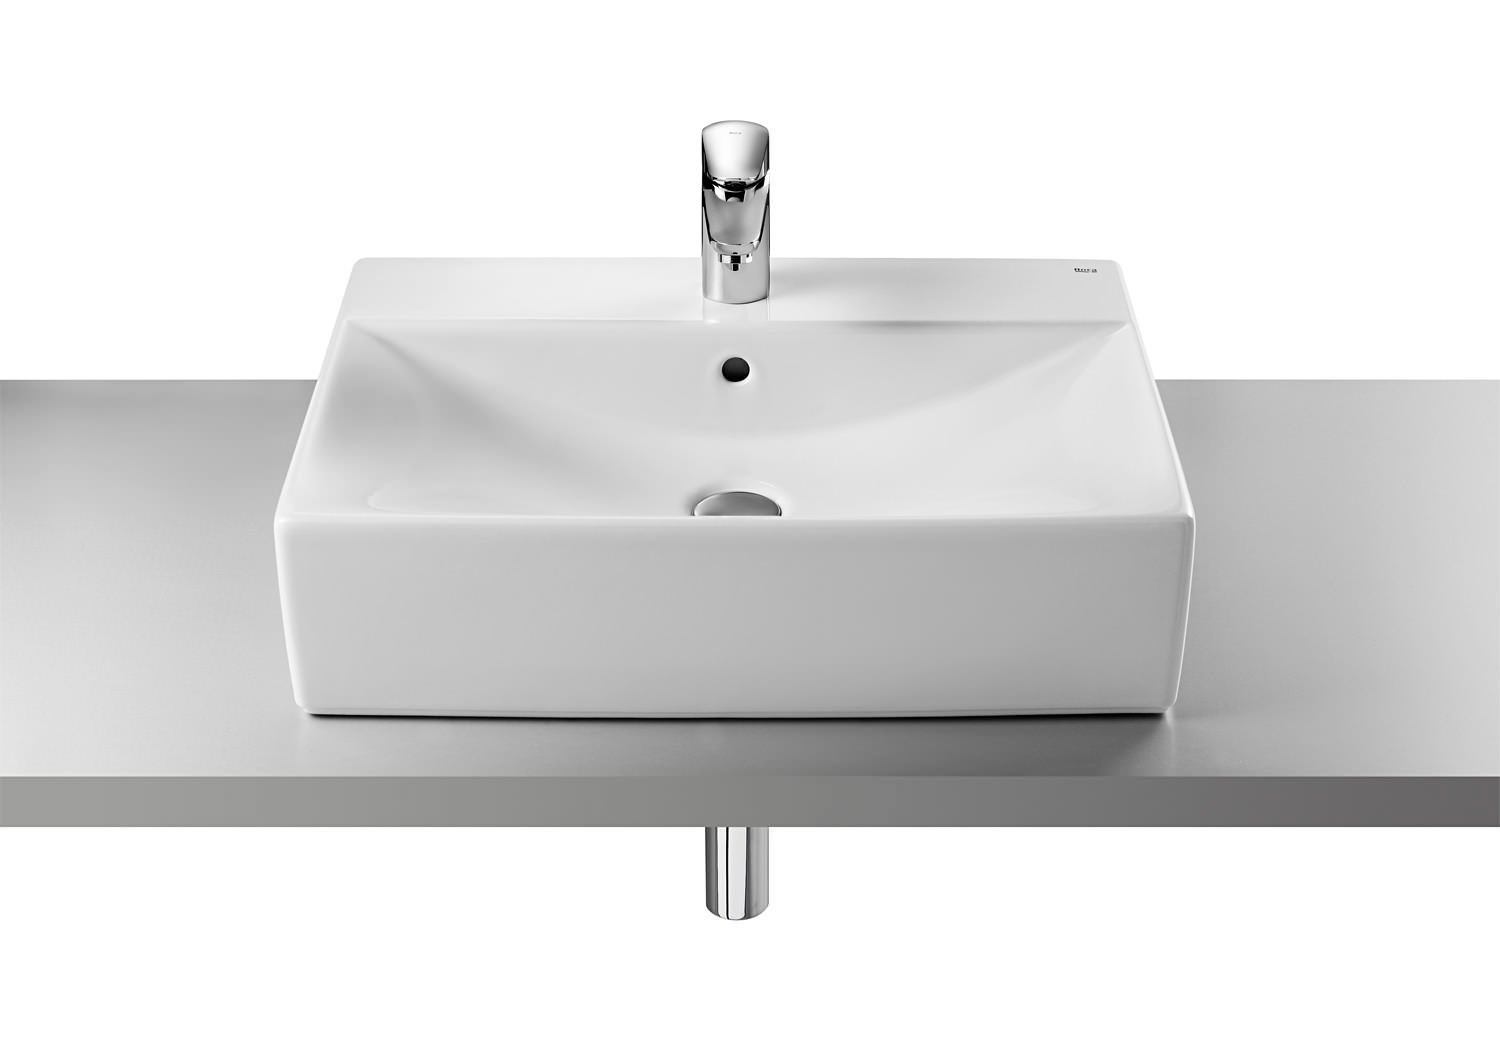 Lavabos Roca Sobre Encimera Roca Diverta On Countertop Basin 600mm Wide 32711g000